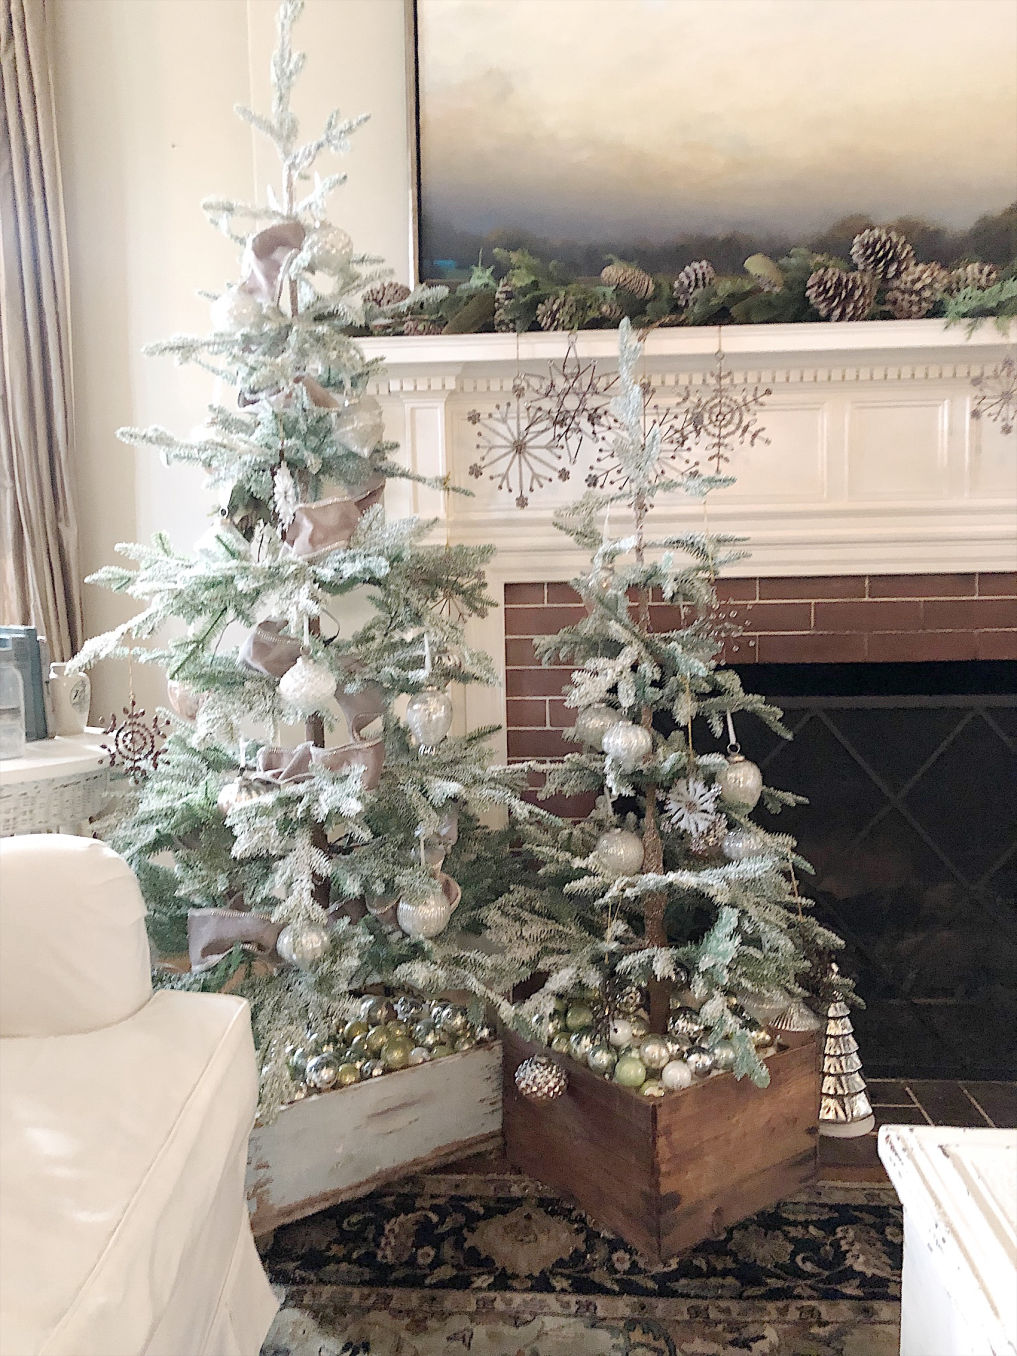 15 Sparse Christmas Trees - love these beautiful trees with vintage crates as tree skirts kellyelko.com #christmas #christmastree #sparsechristmastree #vintagechristmas #christmasdecor #christmasedecorating #christmasdecoratingideas #farmhousechristmas #christmasornaments #neutralchristmas #kellyelko